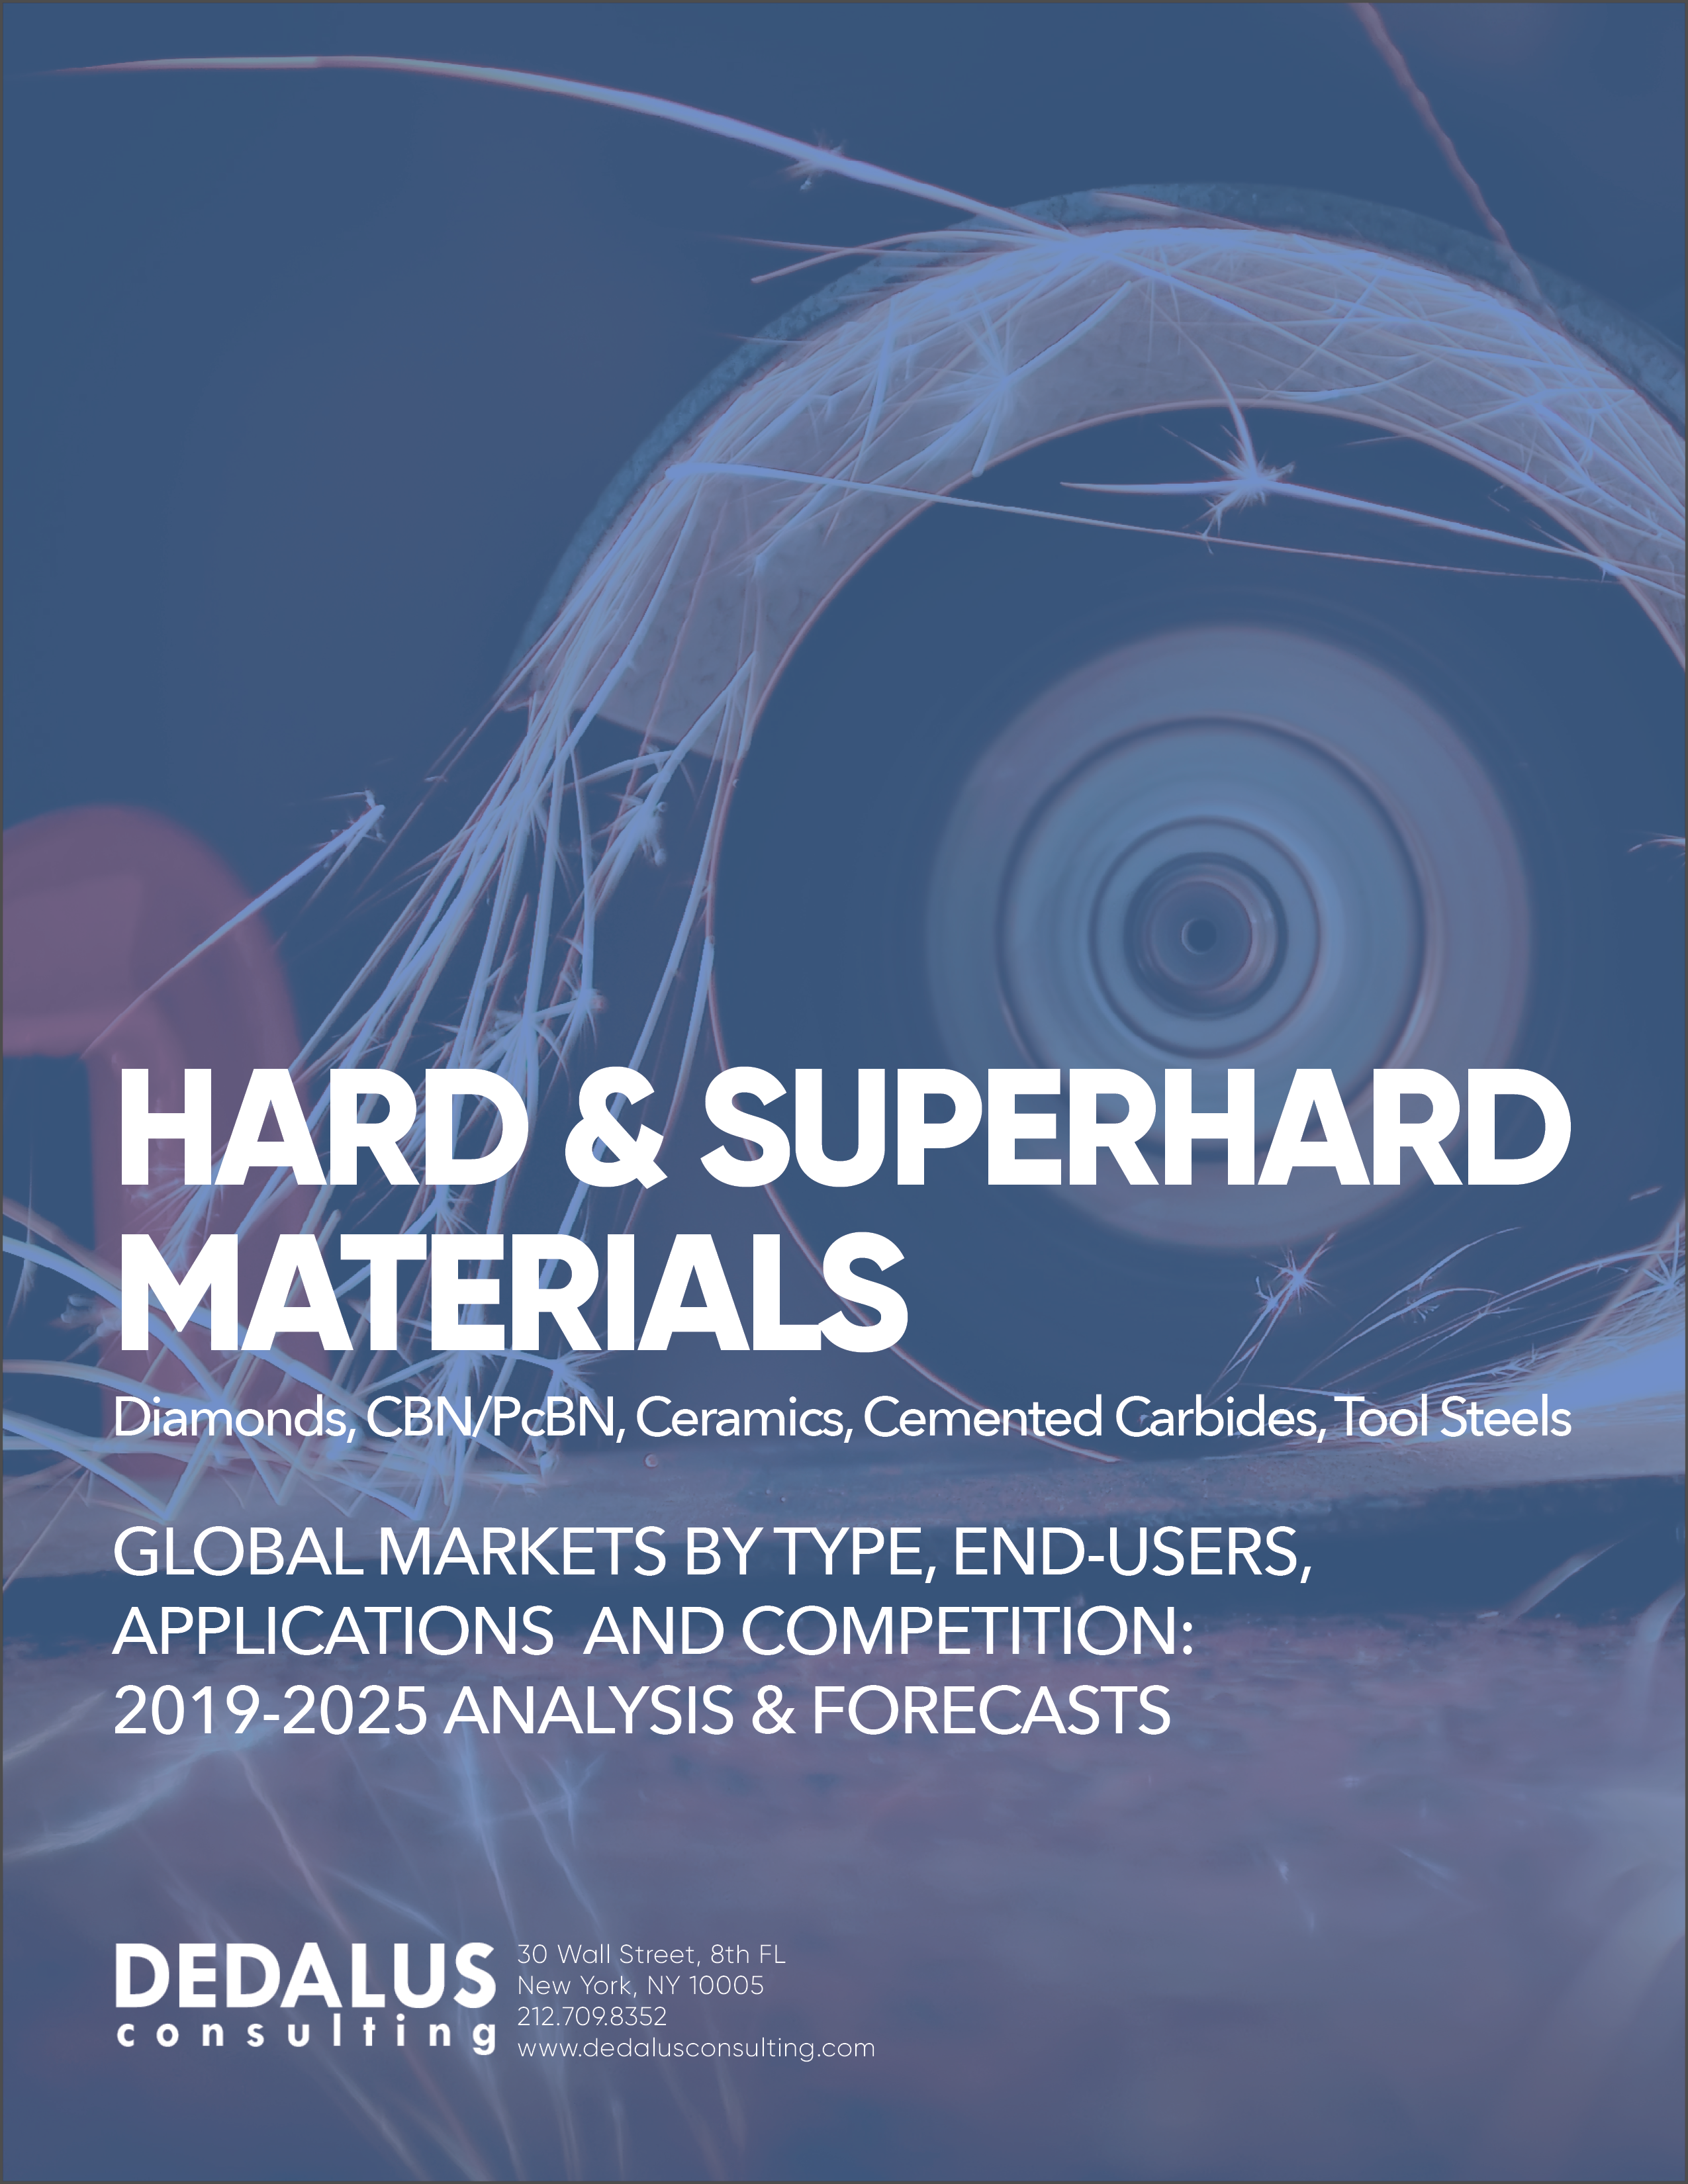 Hard and Superhard Materials 2018